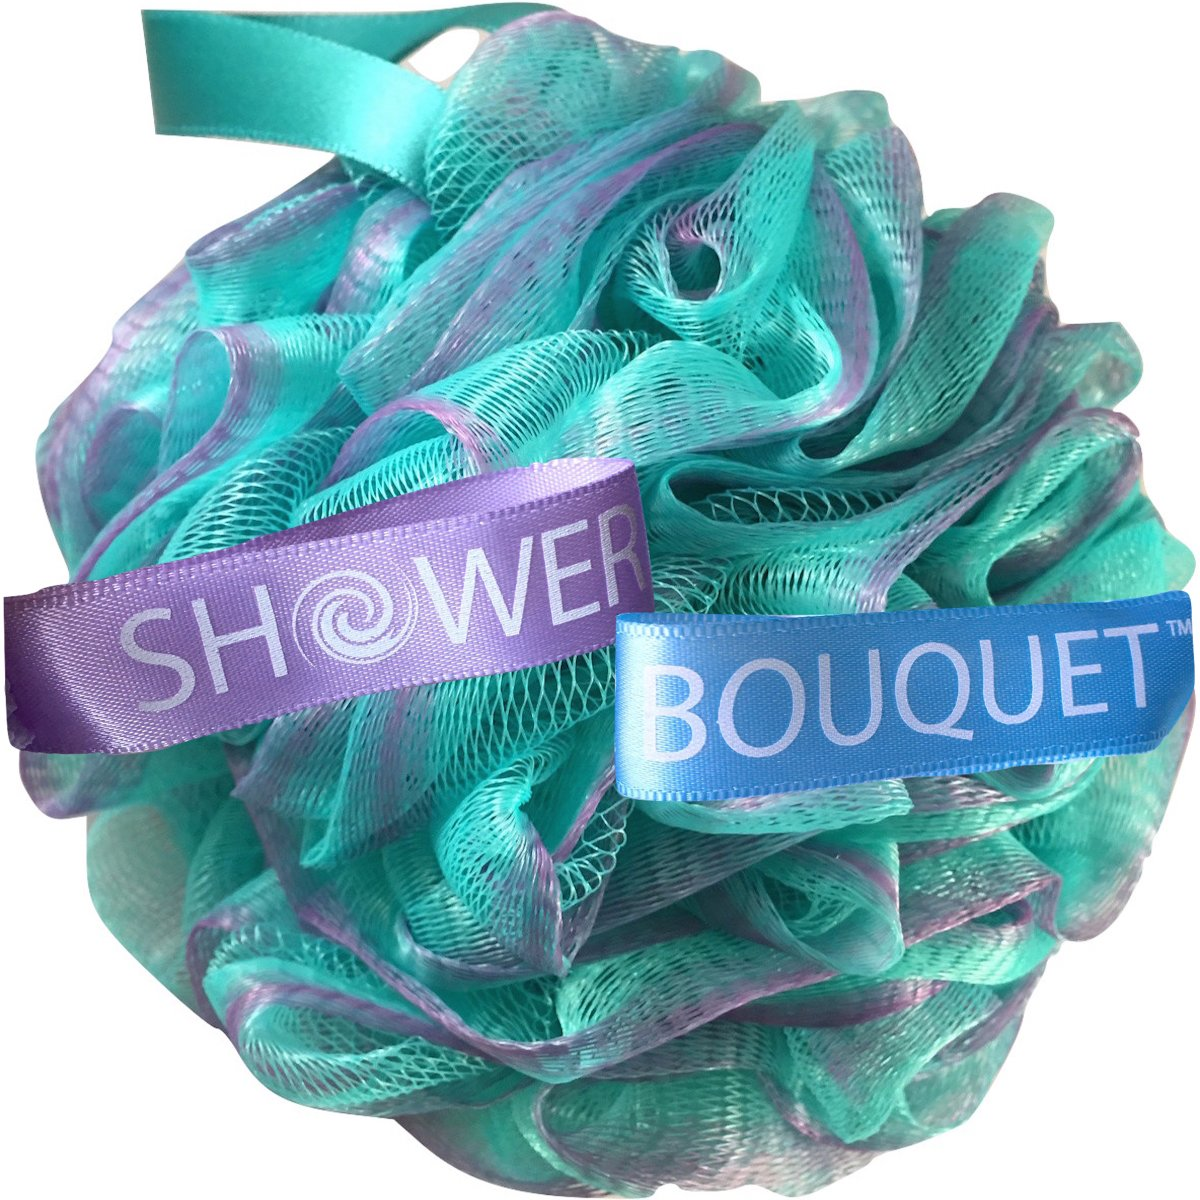 Loofah Bath Sponge Swirl Set XL 75g by Shower Bouquet: Extra Large Mesh Pouf (4 Pack Color Swirls) Luffa Loofa Loufa Puff Scrub - Big, Full Lather Cleanse - Exfoliate with Beauty Bathing Accessories LMP-15-02